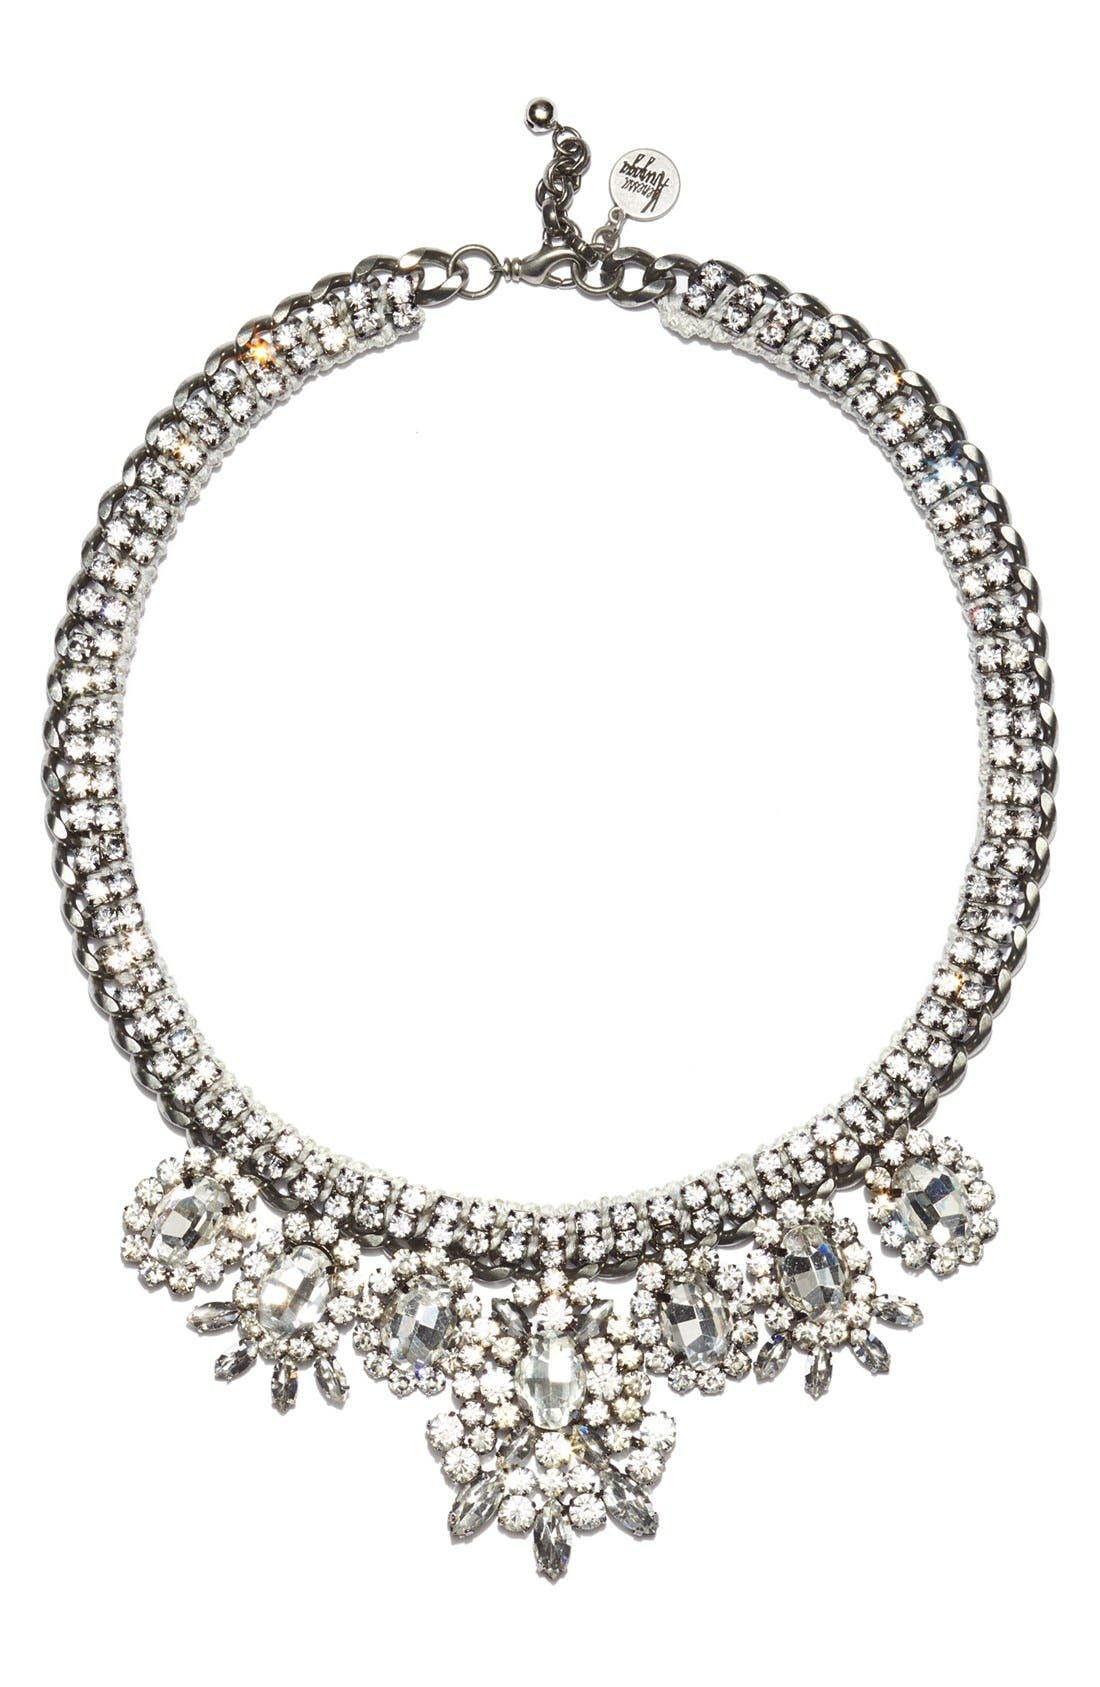 Alternate Image 1 Selected - Venessa Arizaga 'My Fair Lady' Statement Necklace